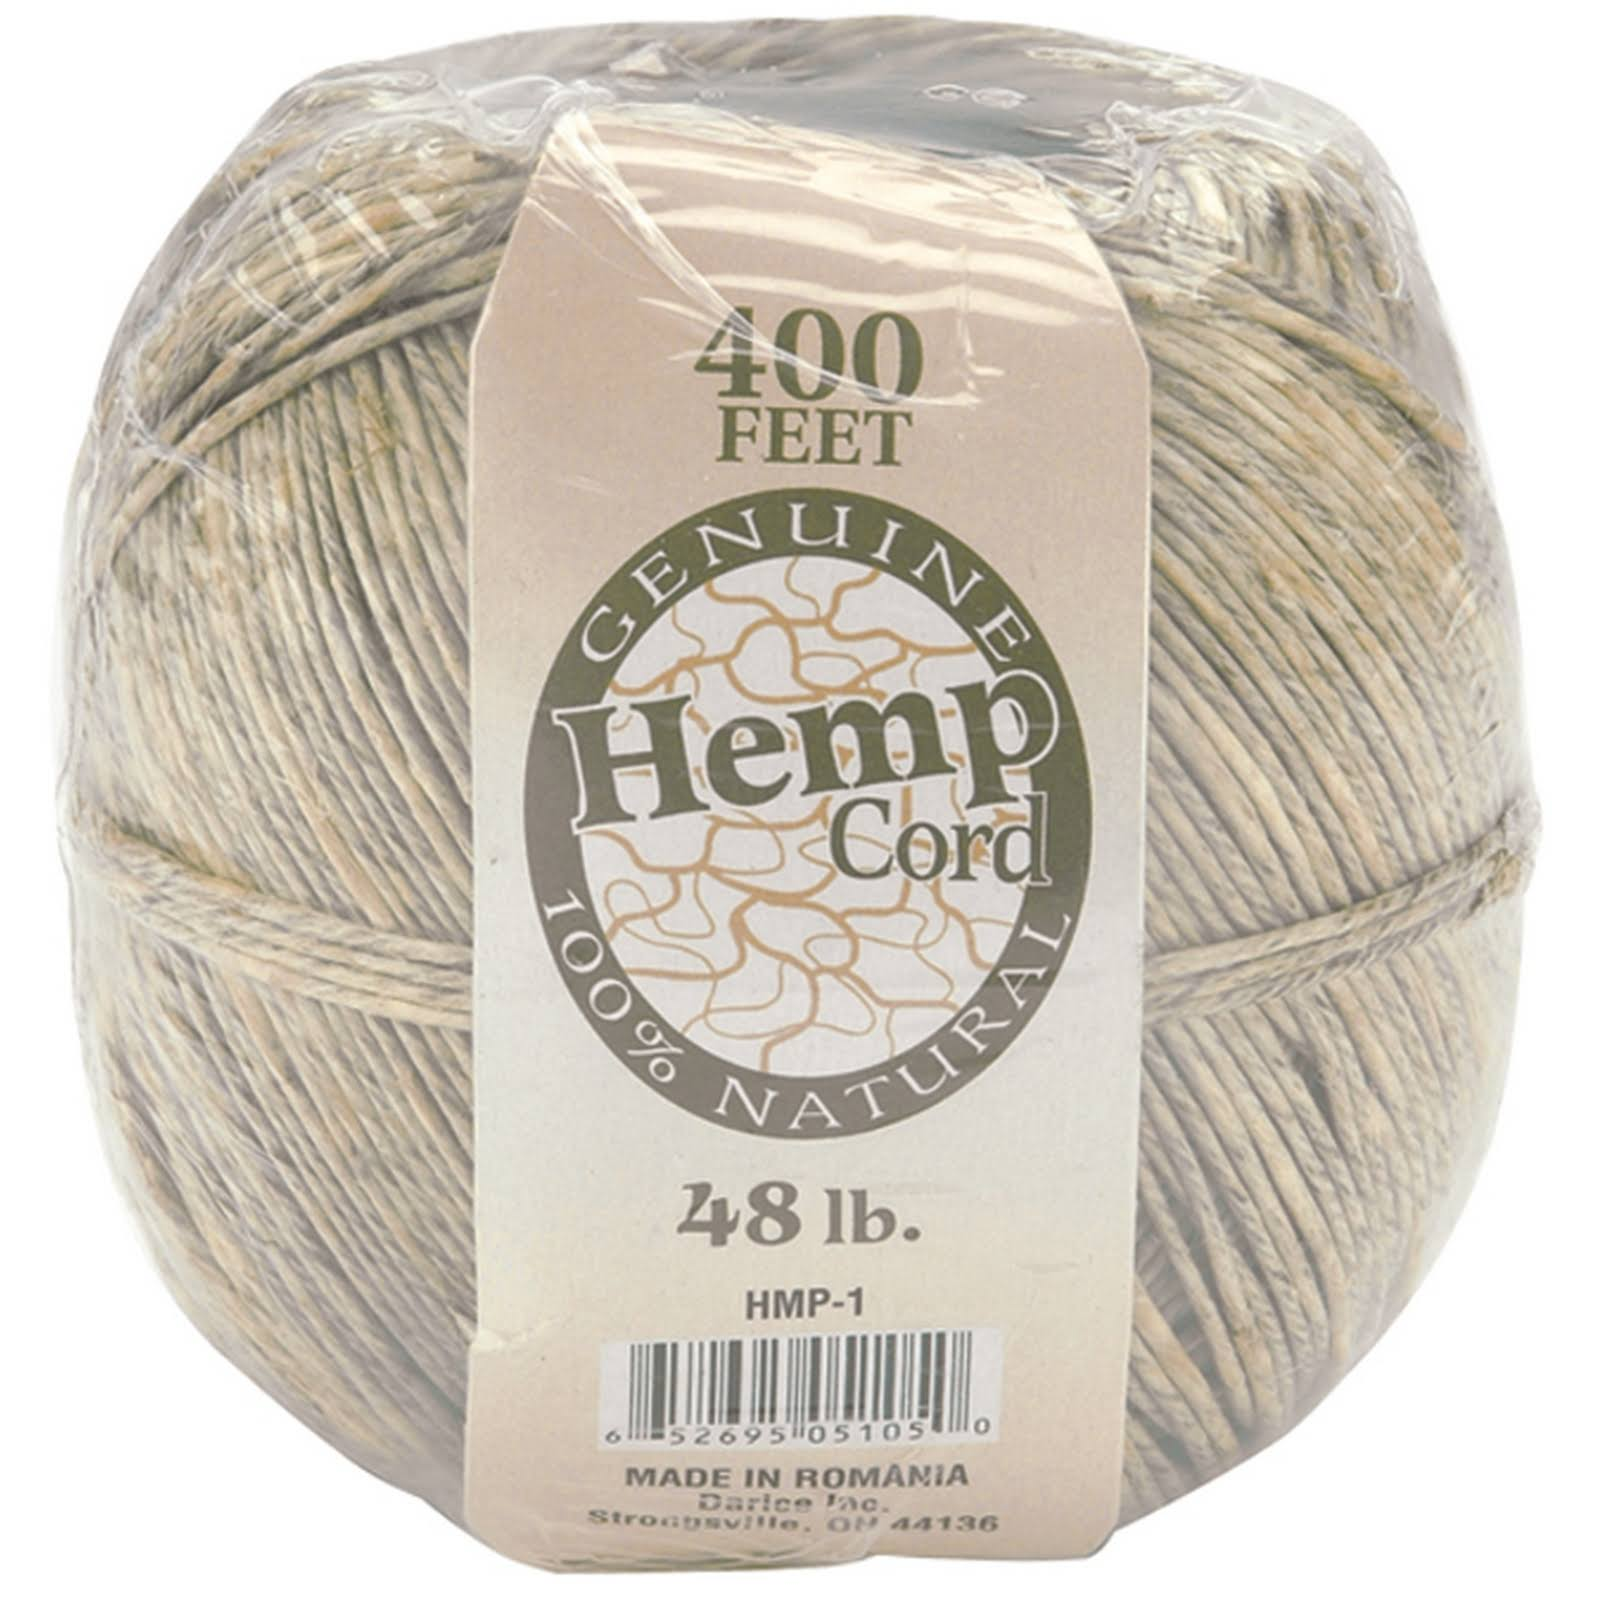 Darice Hemp Cord - Natural, 400ft